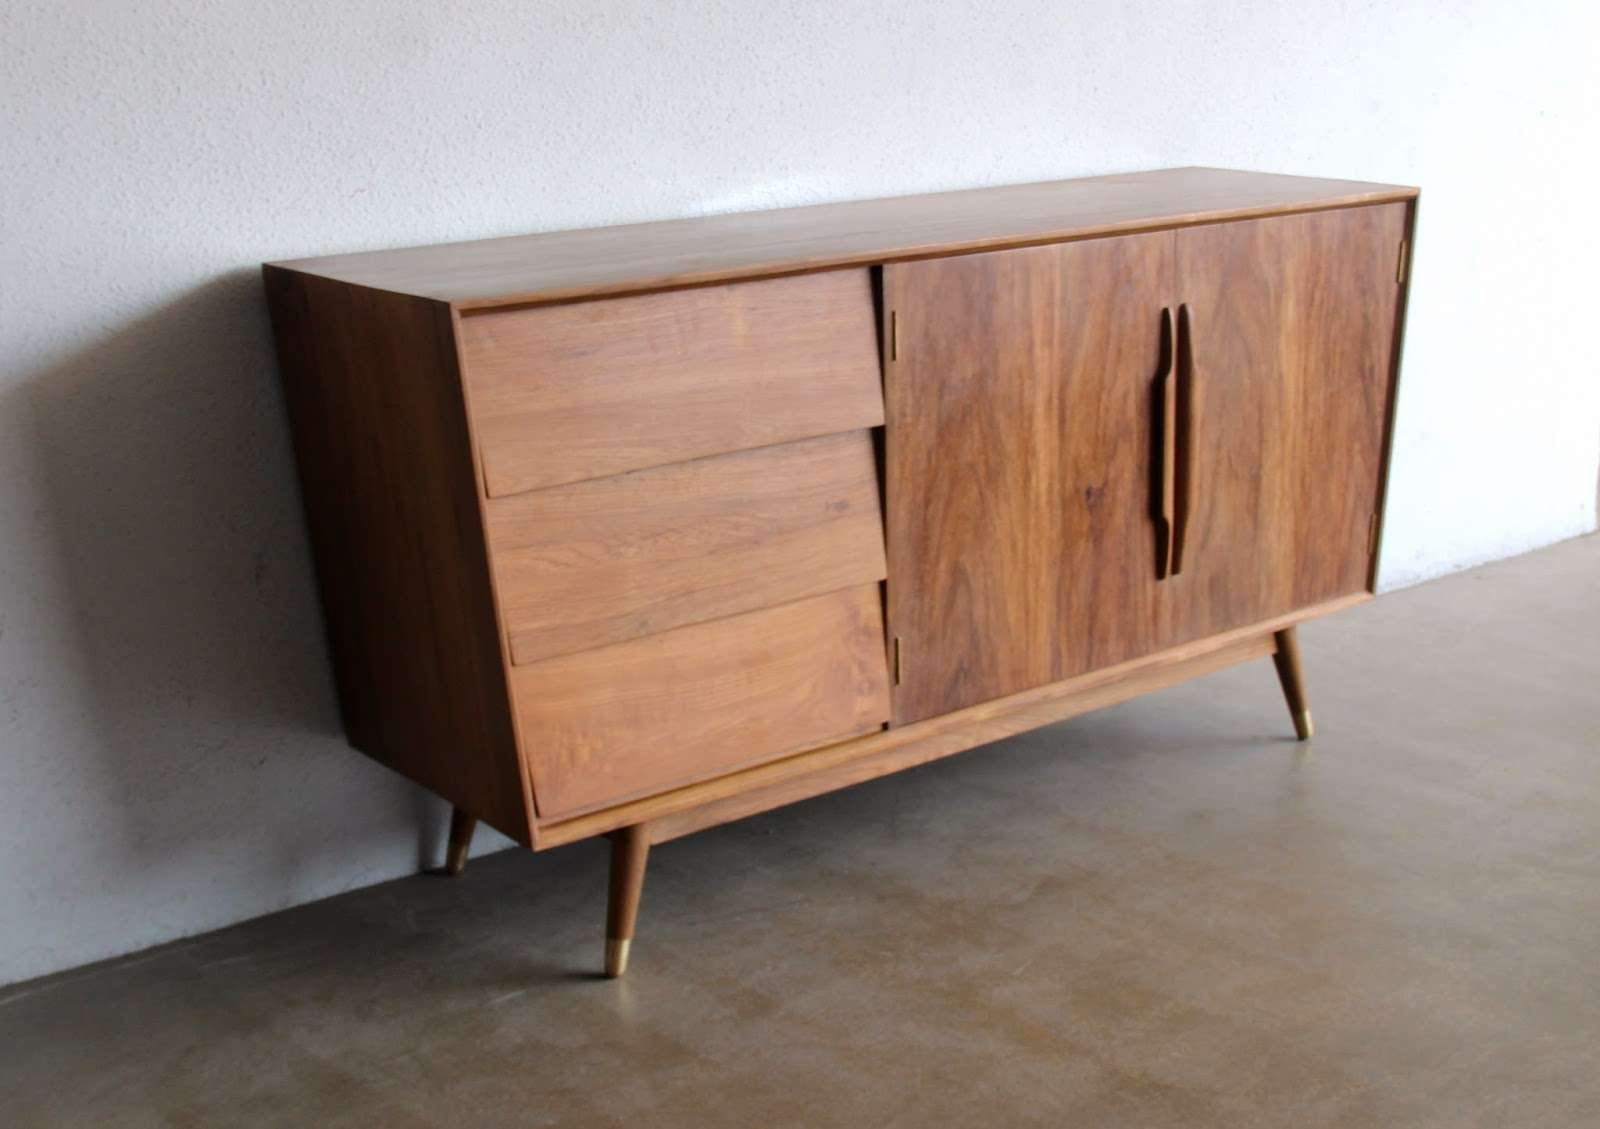 Second Charm Furniture – Mid Century Modern Influence | Bobs Furniture Intended For Midcentury Sideboards (View 14 of 20)